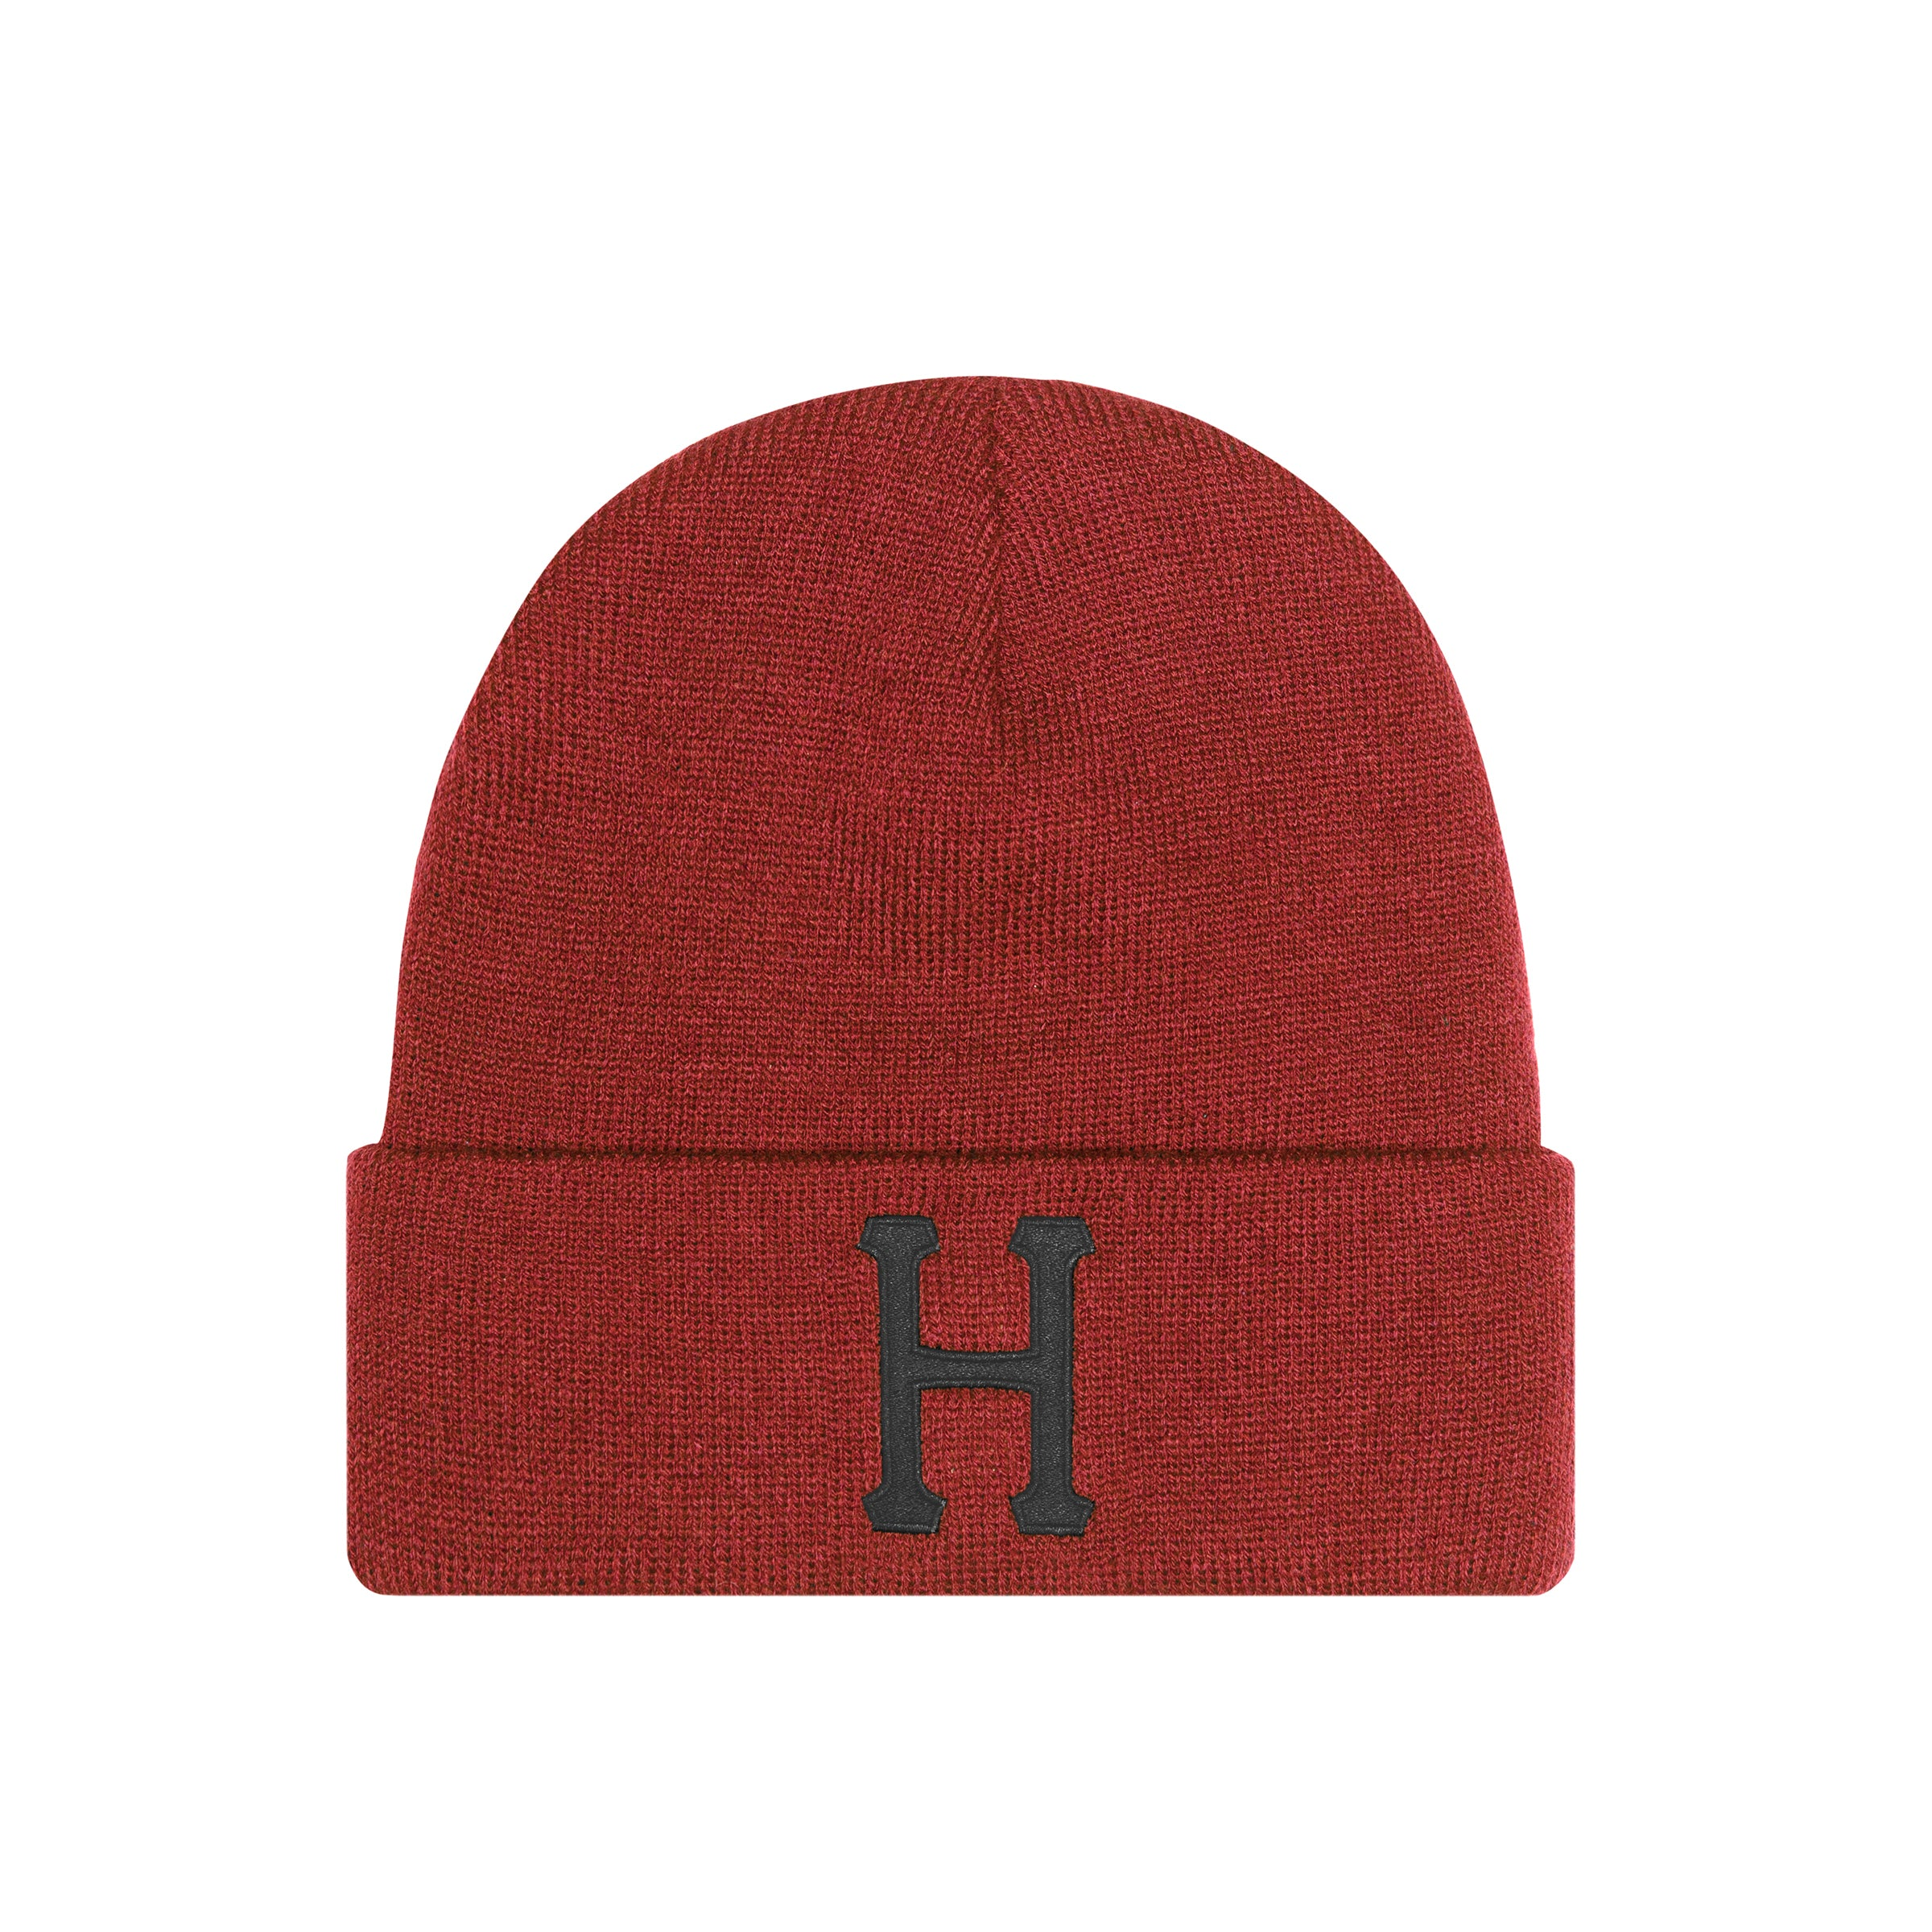 CLASSIC H BEANIE ROSE WOOD RED HUF